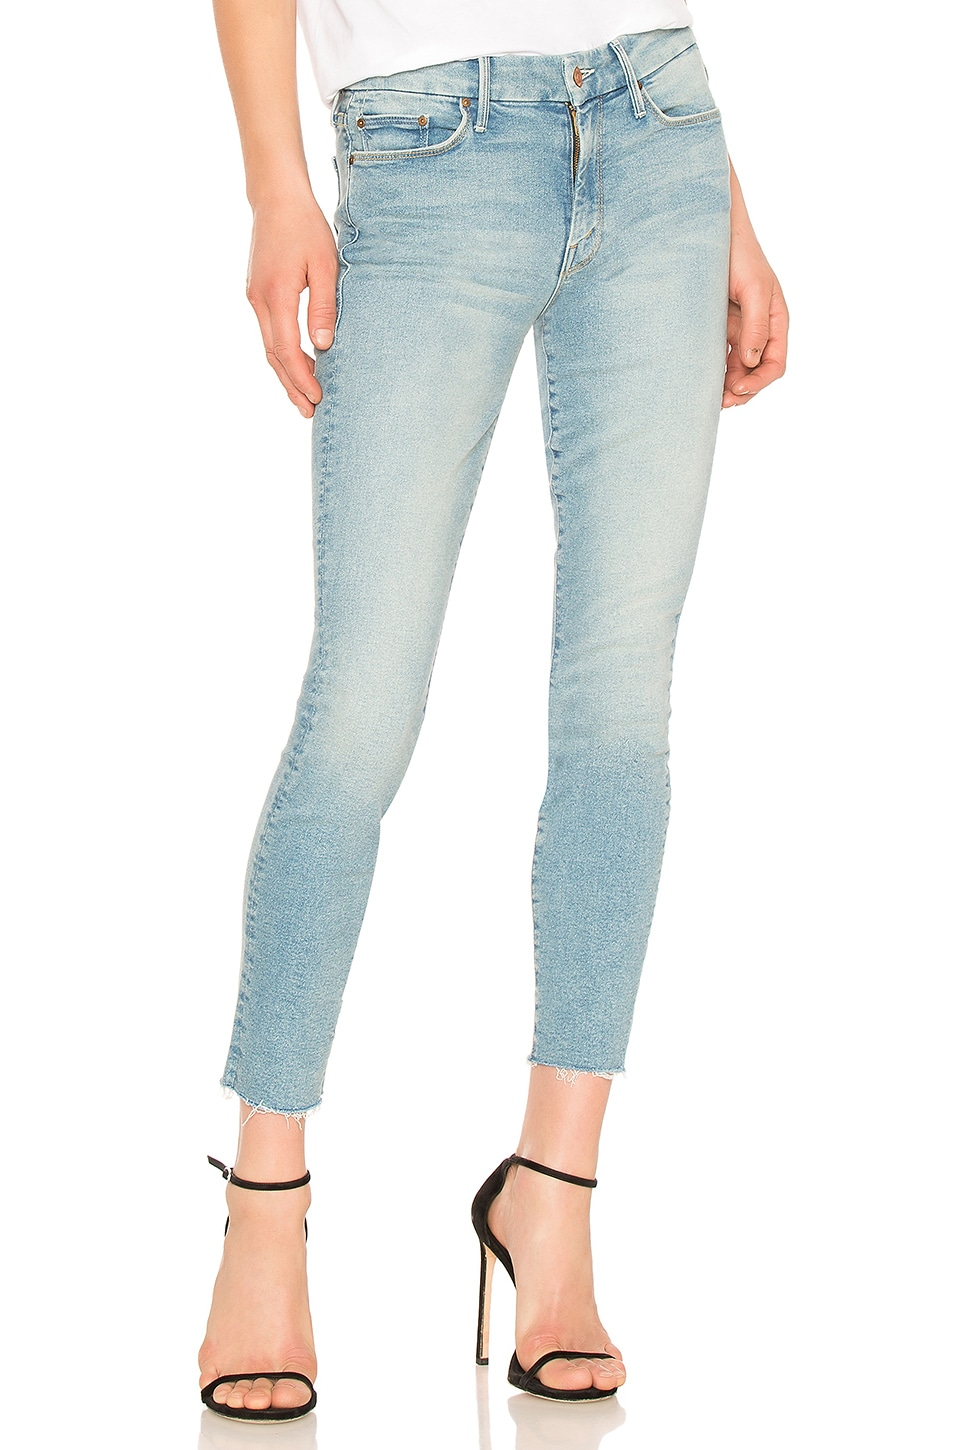 The Looker Ankle Fray Jean